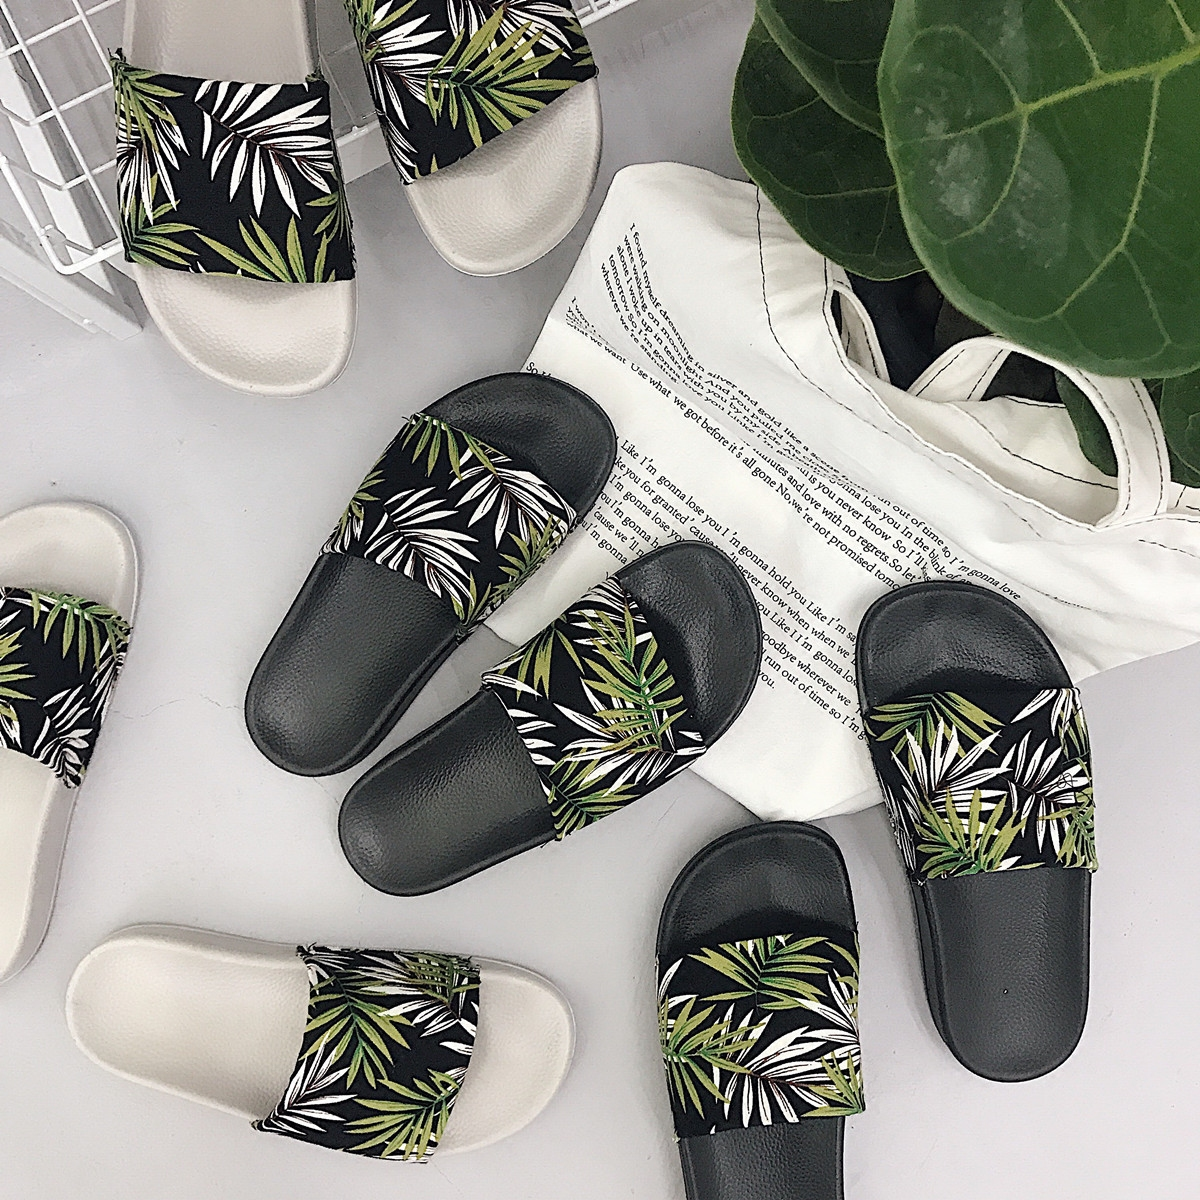 79239bcb2 Women Slides Summer Platform Slippers Women Fashion Shoes Green Leaves Flip  Flops Sandals Holiday Beach Slides Zapatillas Mujer-in Slippers from Shoes  on ...